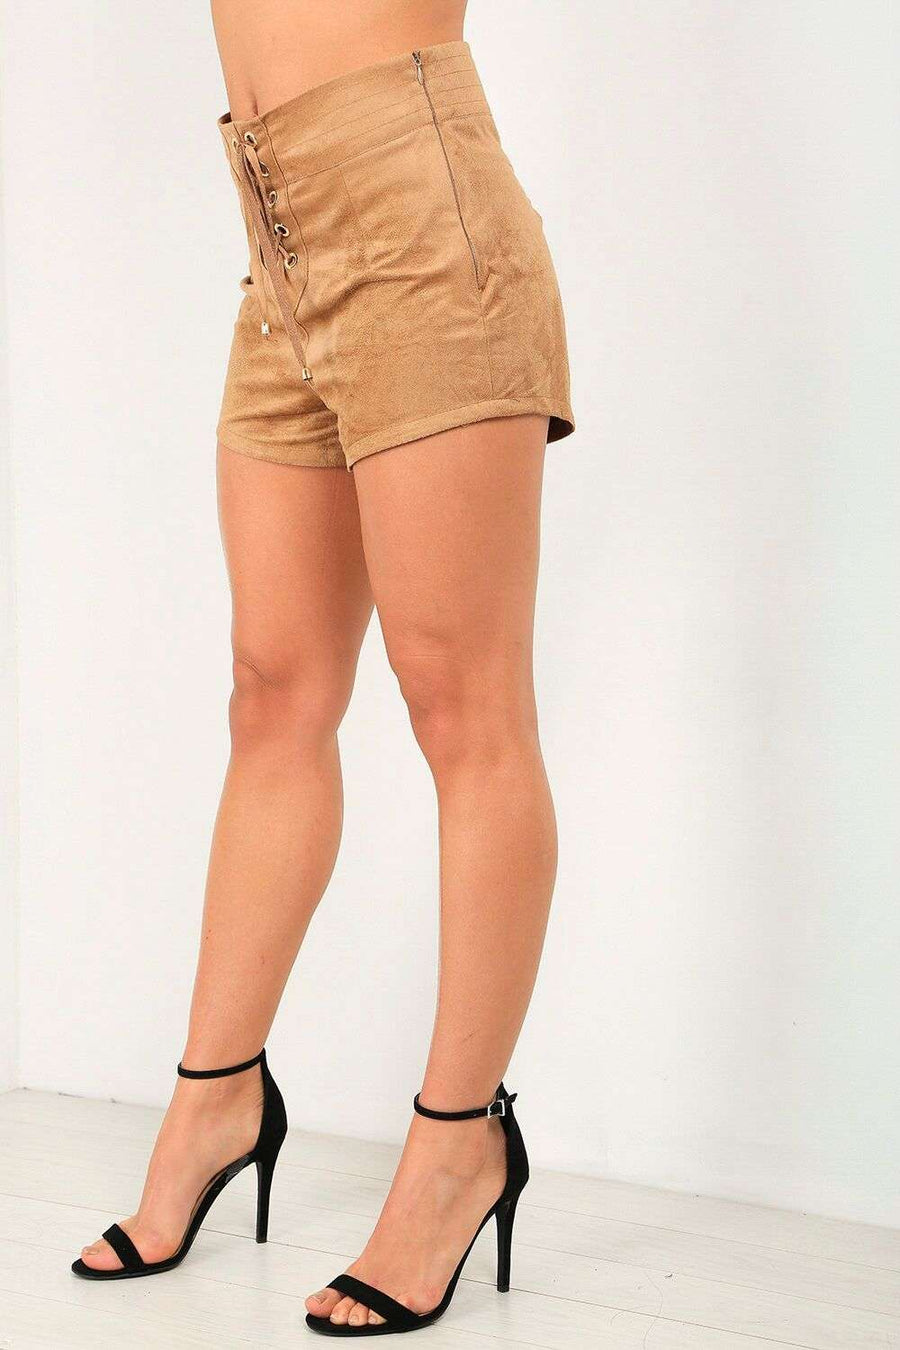 Carrah High Waist Faux Suede Lace Up Shorts - bejealous-com